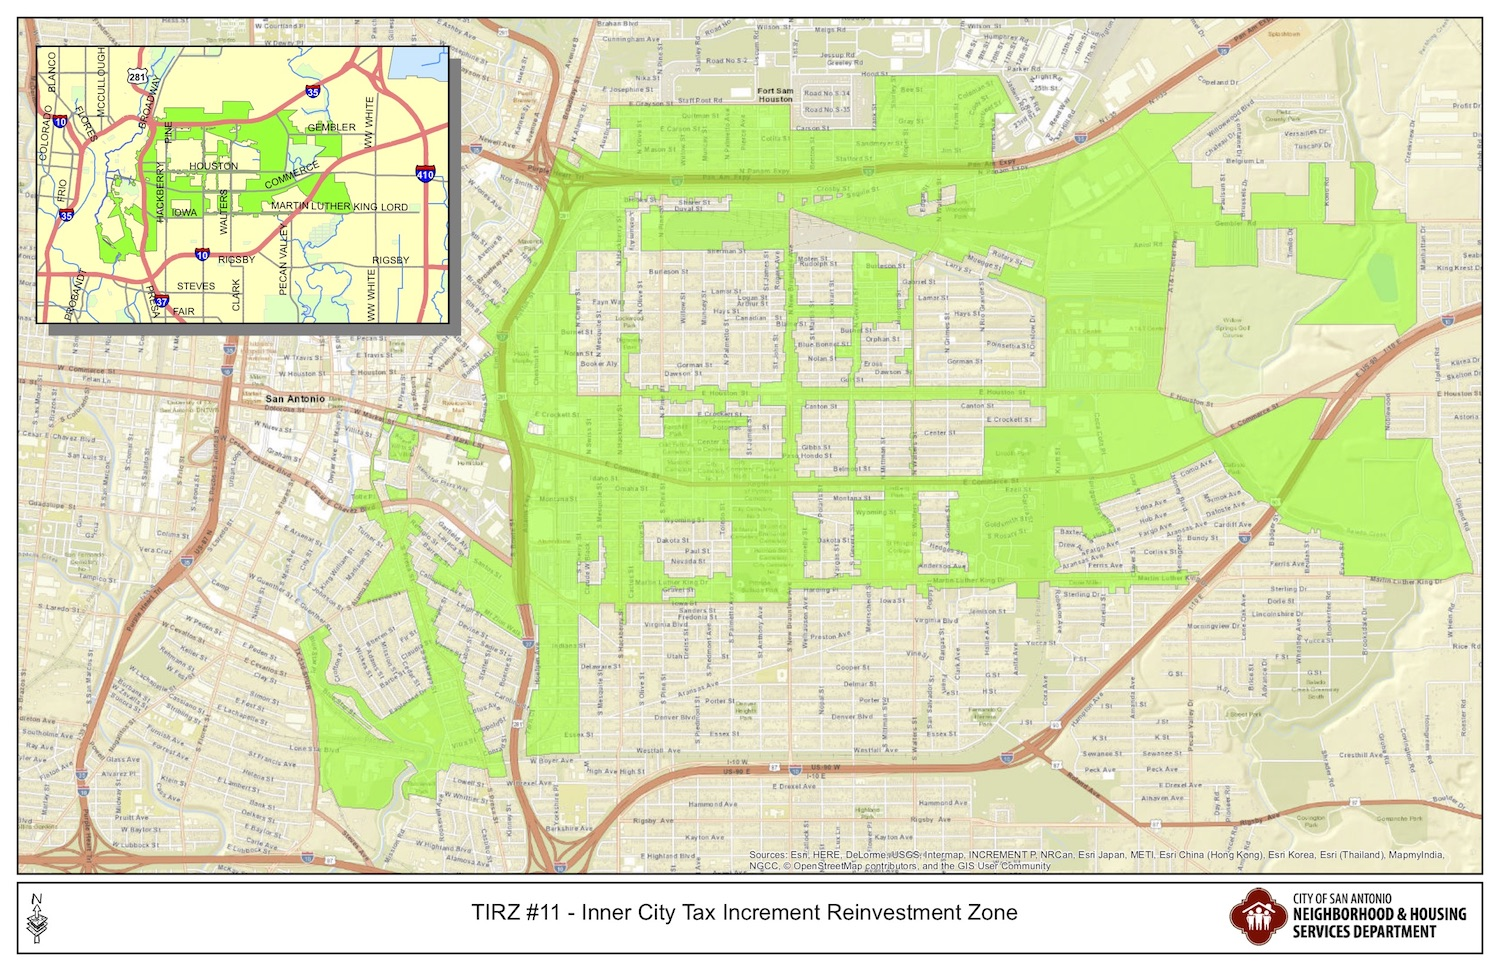 The Inner-City Tax Increment Reinvestment Zone stretches from South of downtown to the East Side, loosely bounded by Fort Sam Houston to the north and Martin Luther King Jr. Drive to the south.